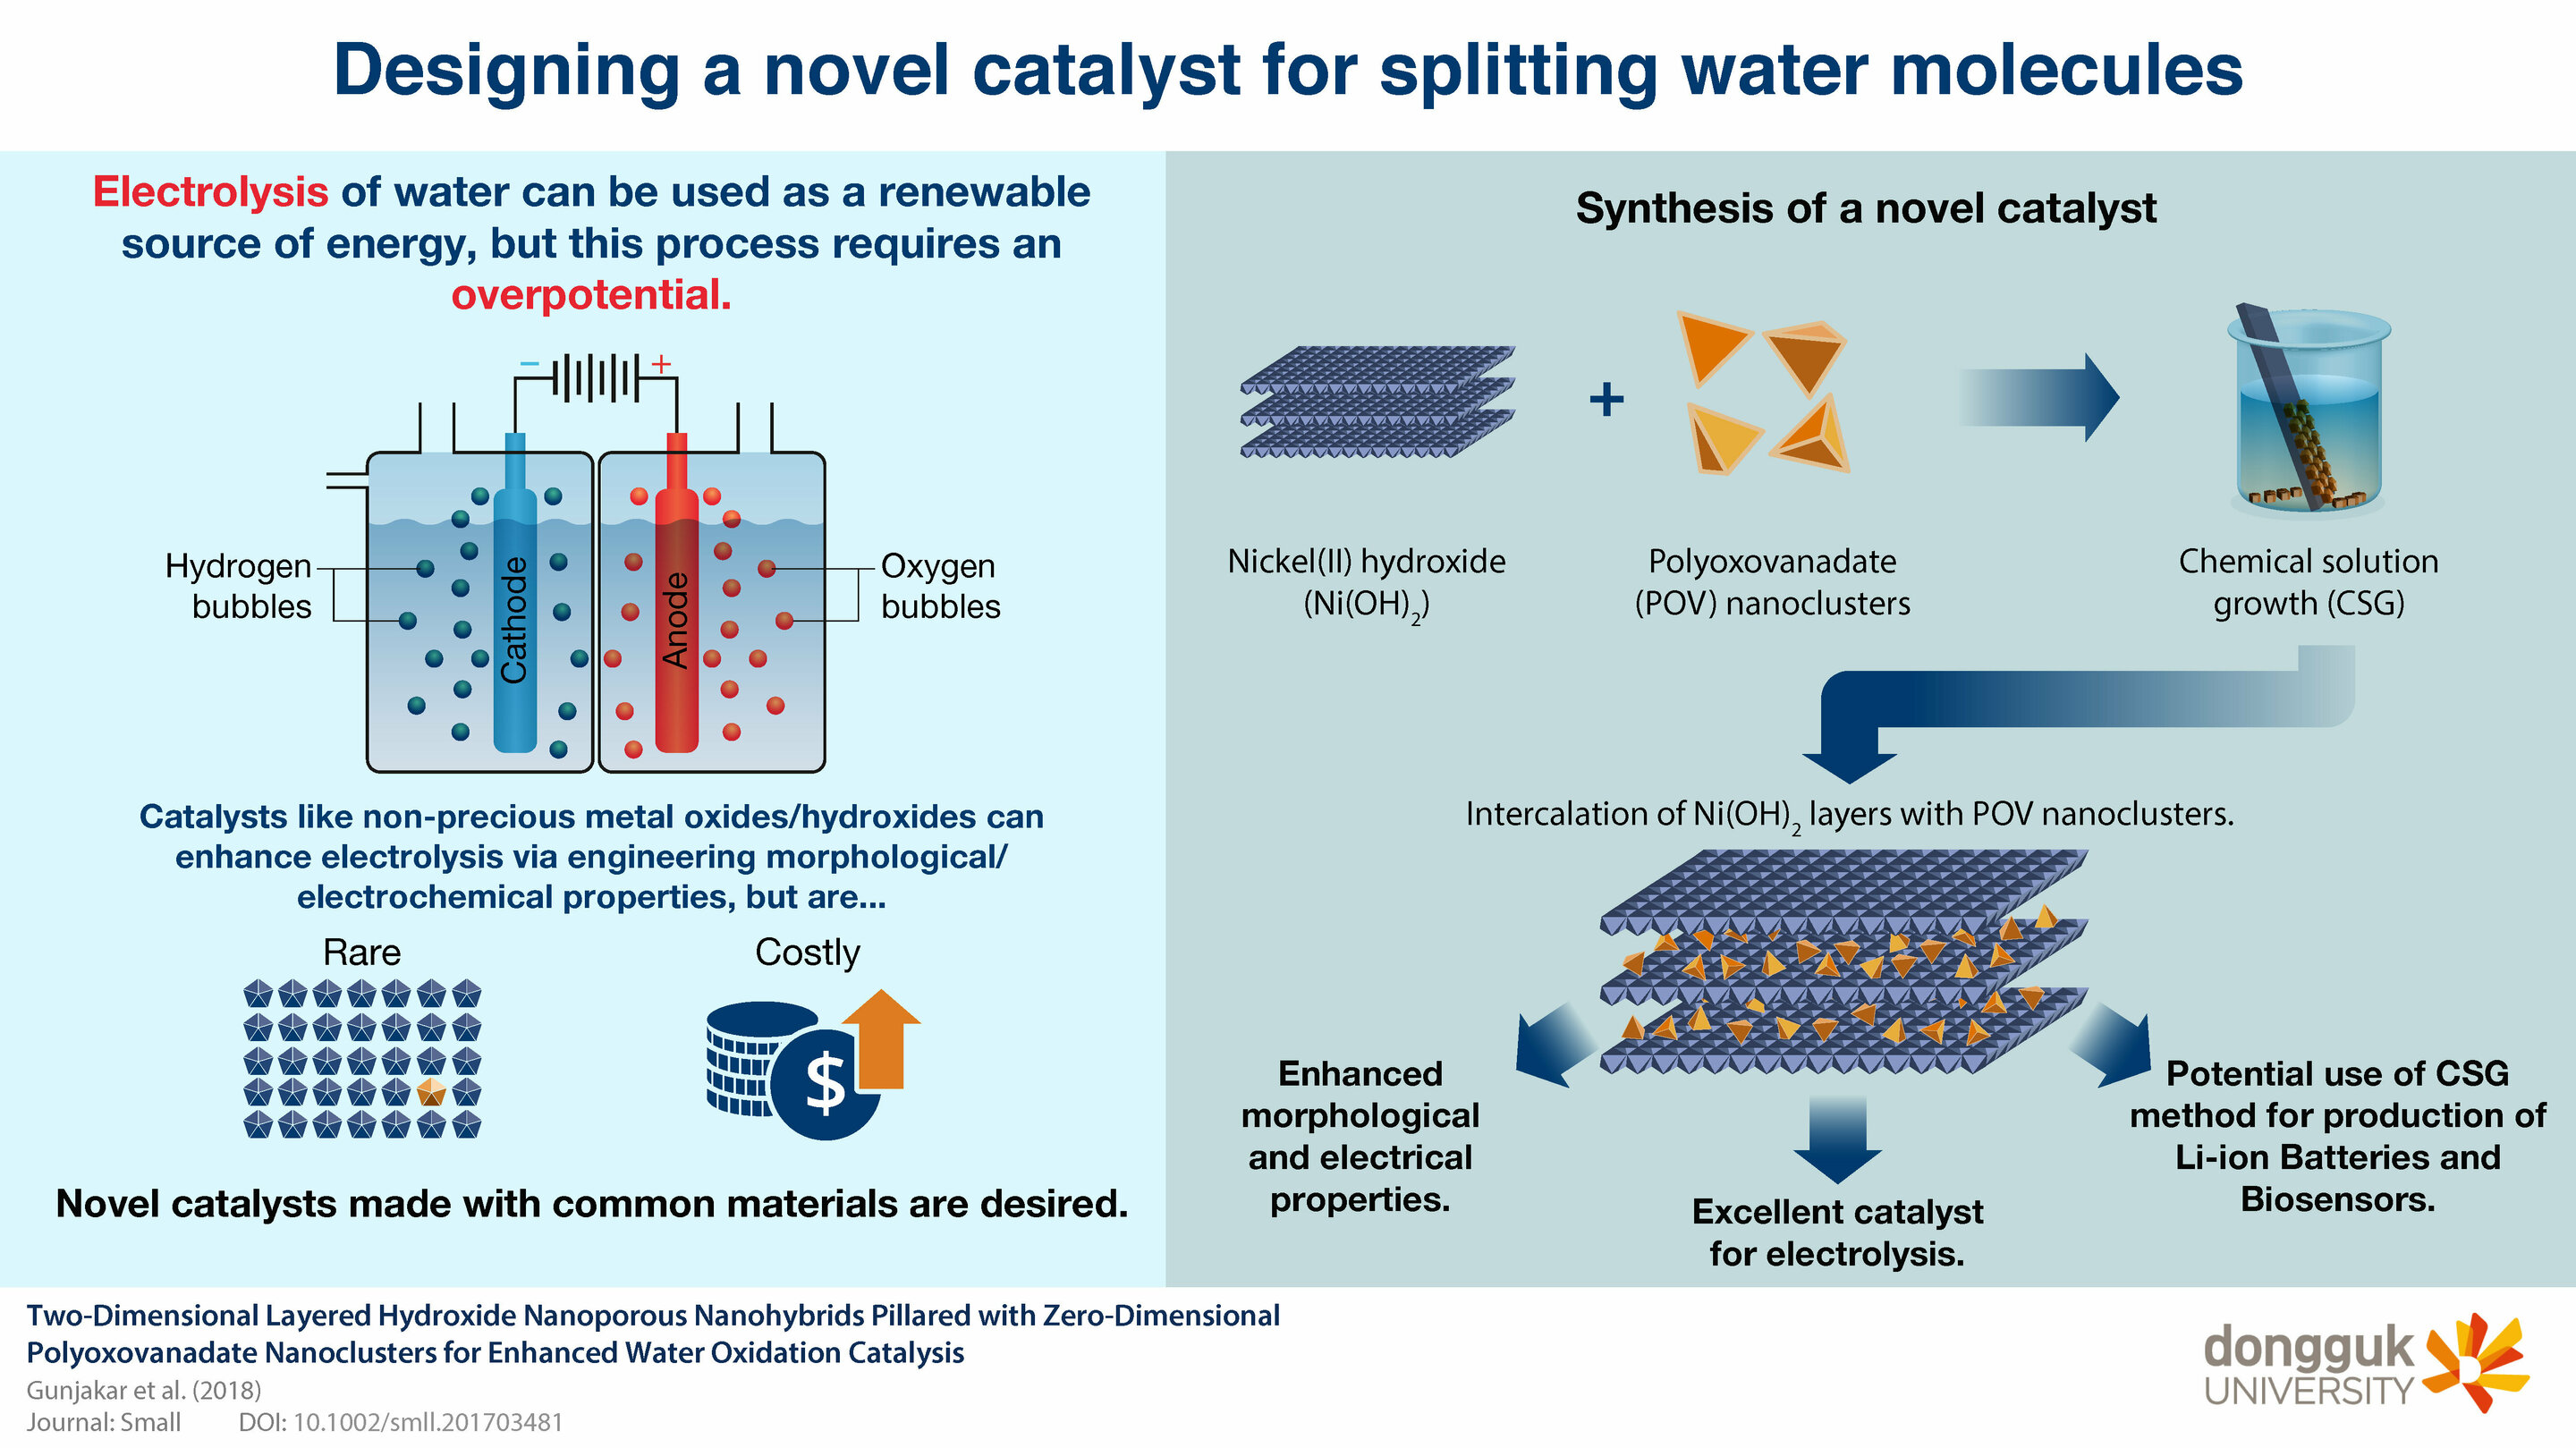 A powerful catalyst for electrolysis of water that could help